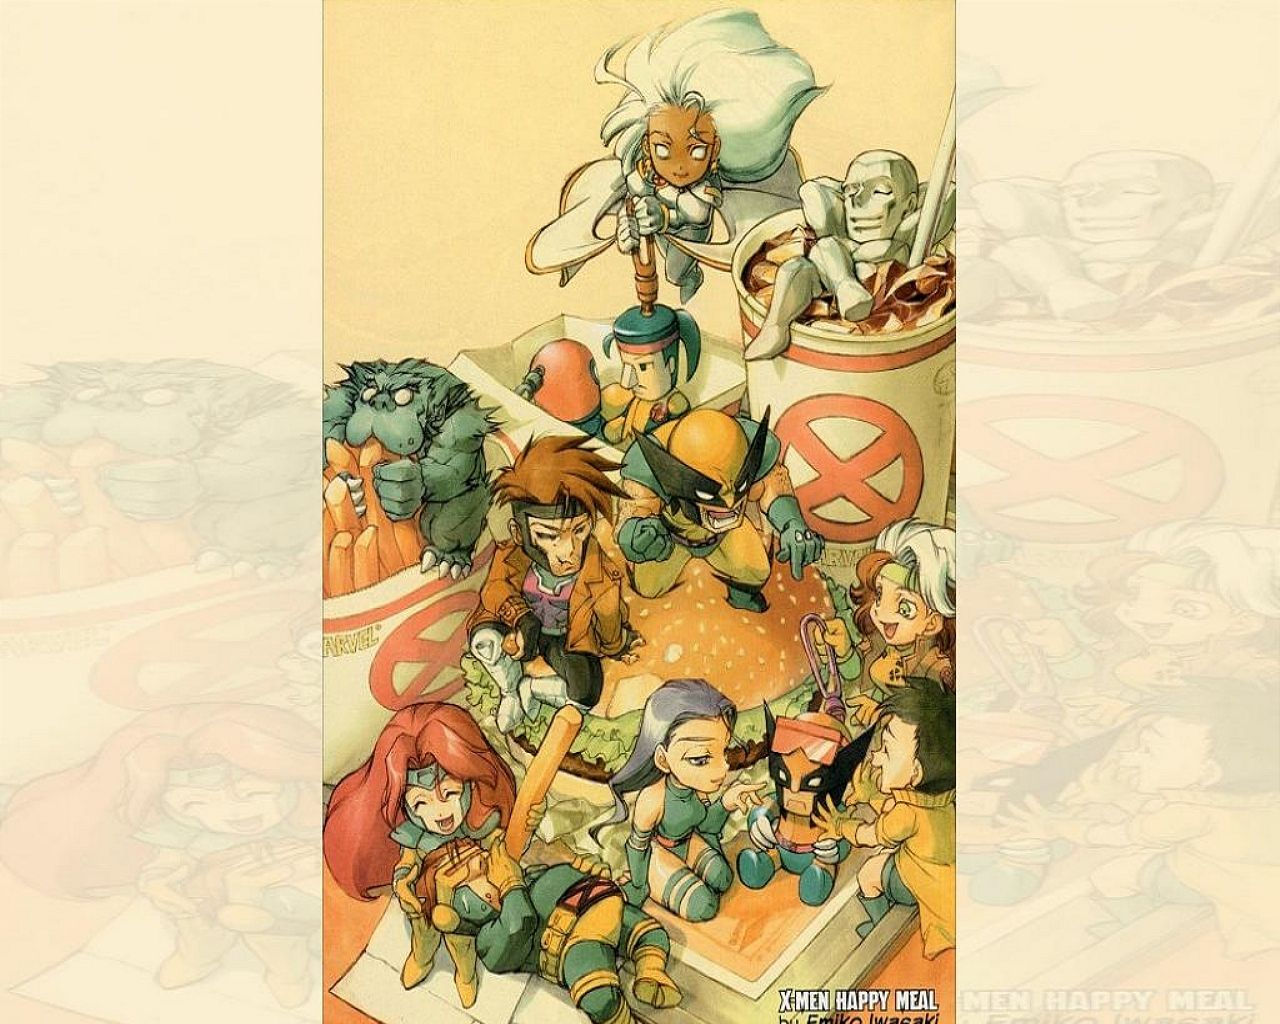 X-Men Happy Meal